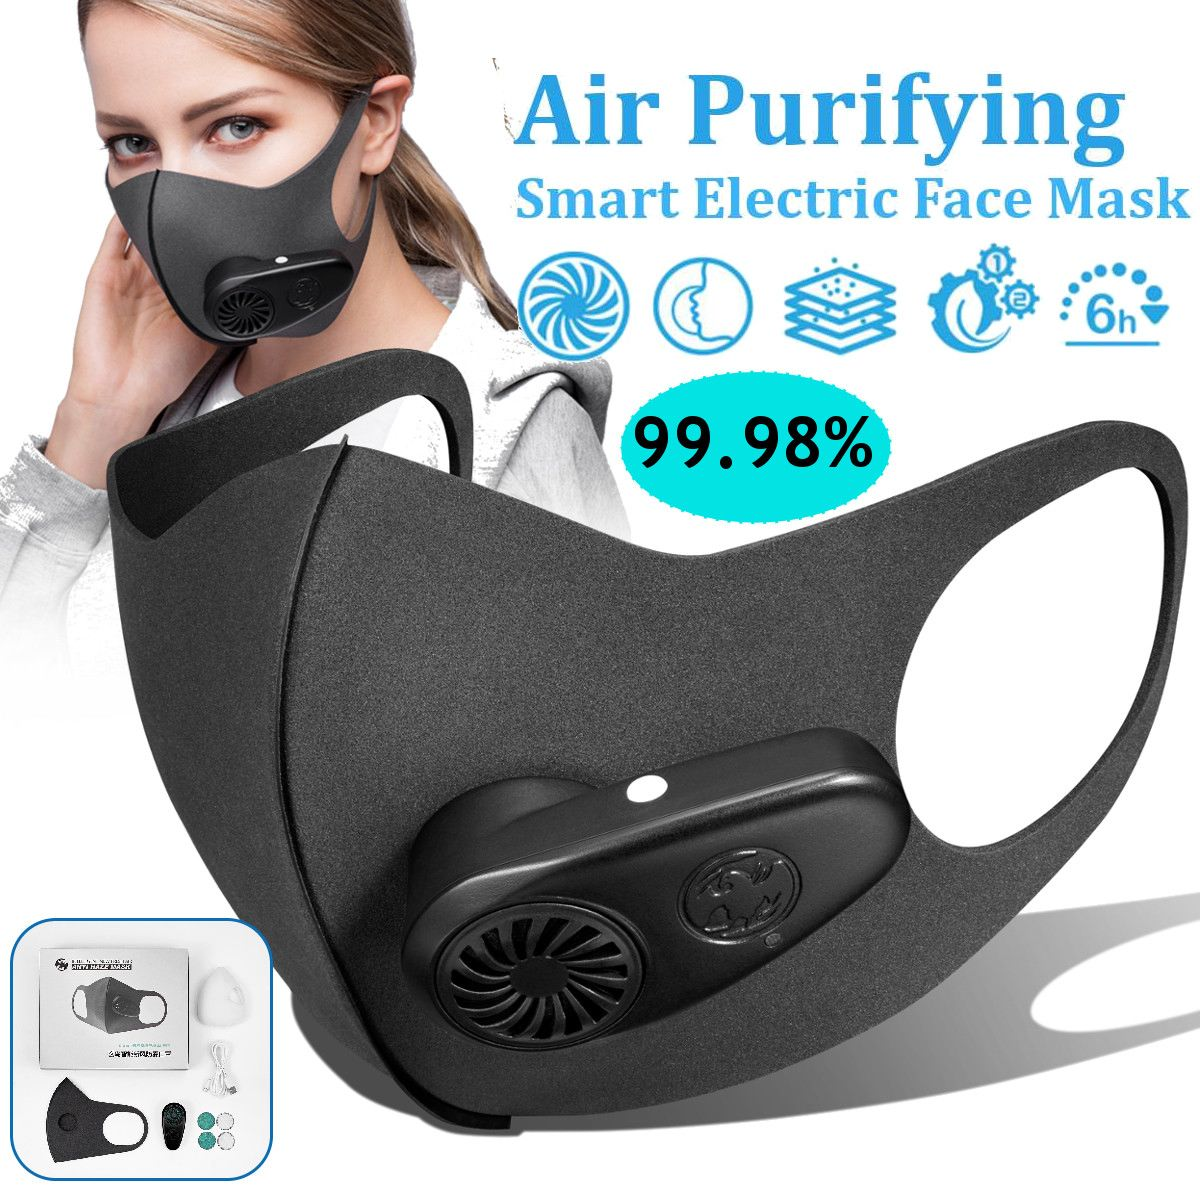 N95 Smart Electric Face Mask Air Purifying Anti Dust Pollution Fresh Air Supply Pm2.5 With Breathing Valve Personal Health Car